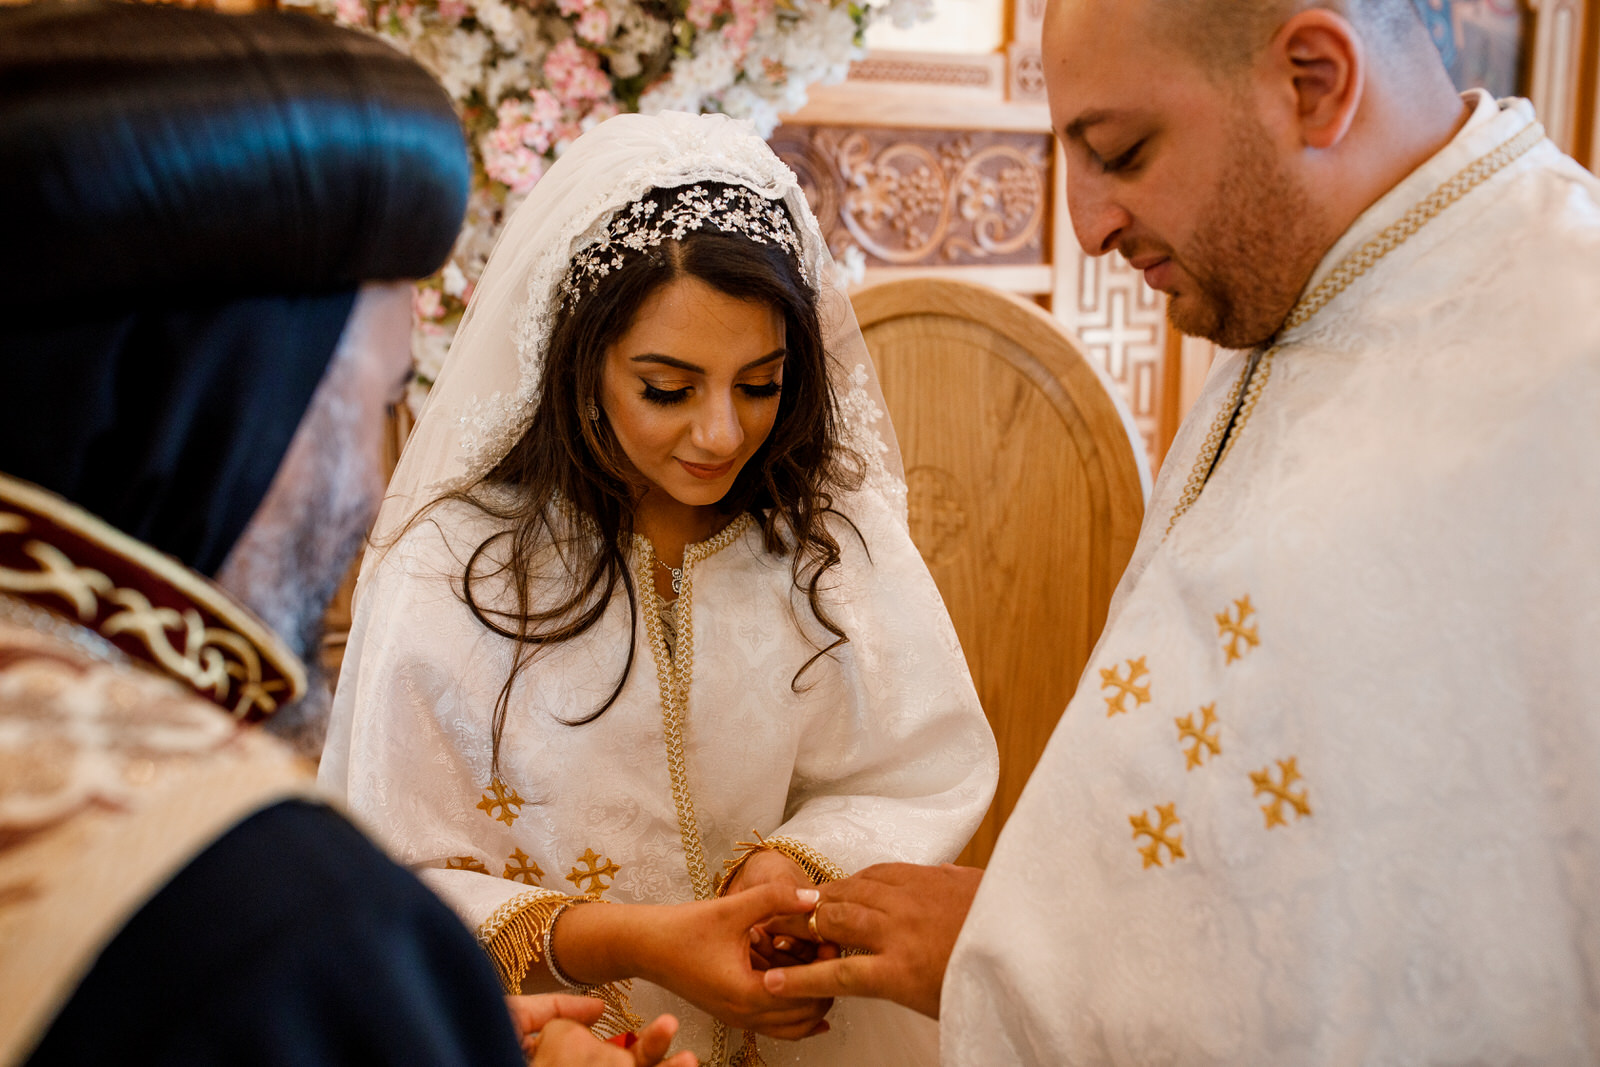 egyptian wedding exchanging of rings